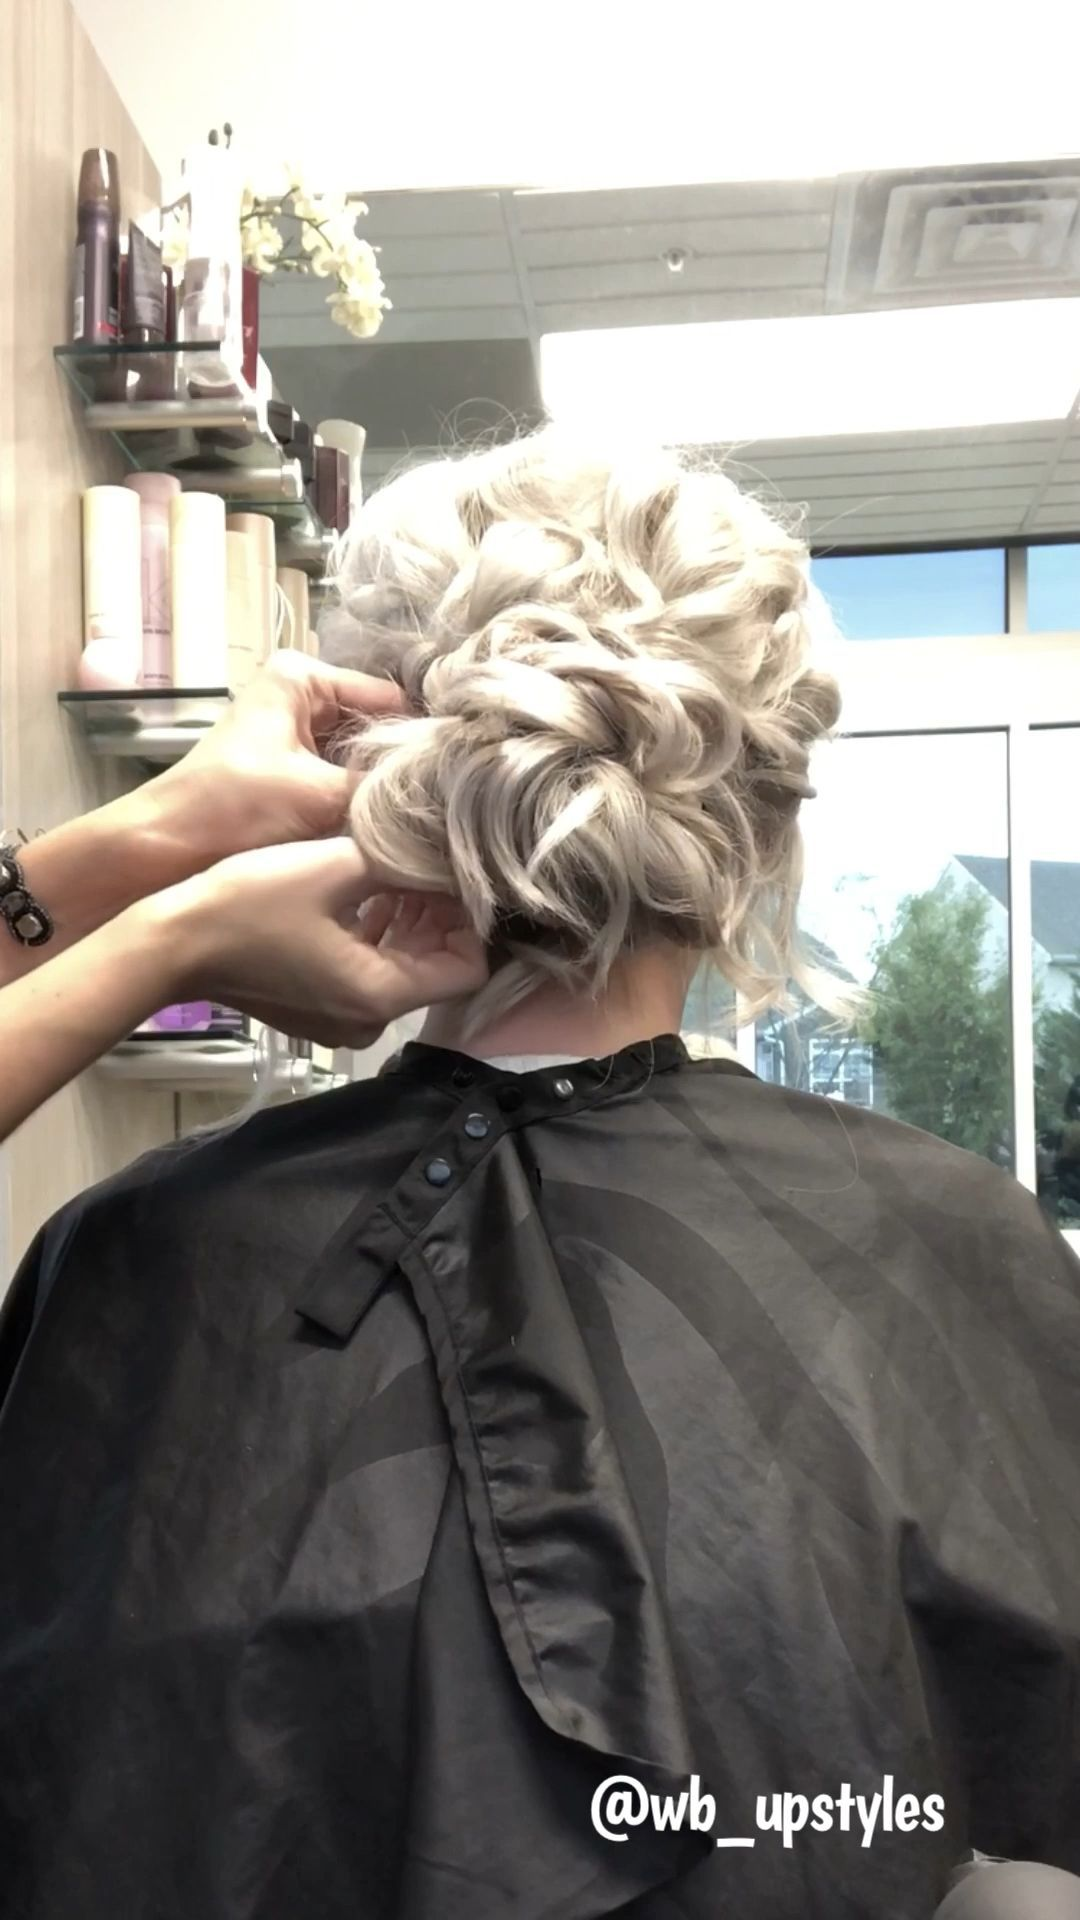 Wedding Hair Stylists Near Me Wedding Hair Styles For Short Hair Wedding Hair Veils Wedding Hair Styles F In 2020 Hair Styles Wedding Hairstyles Videos Hair Videos